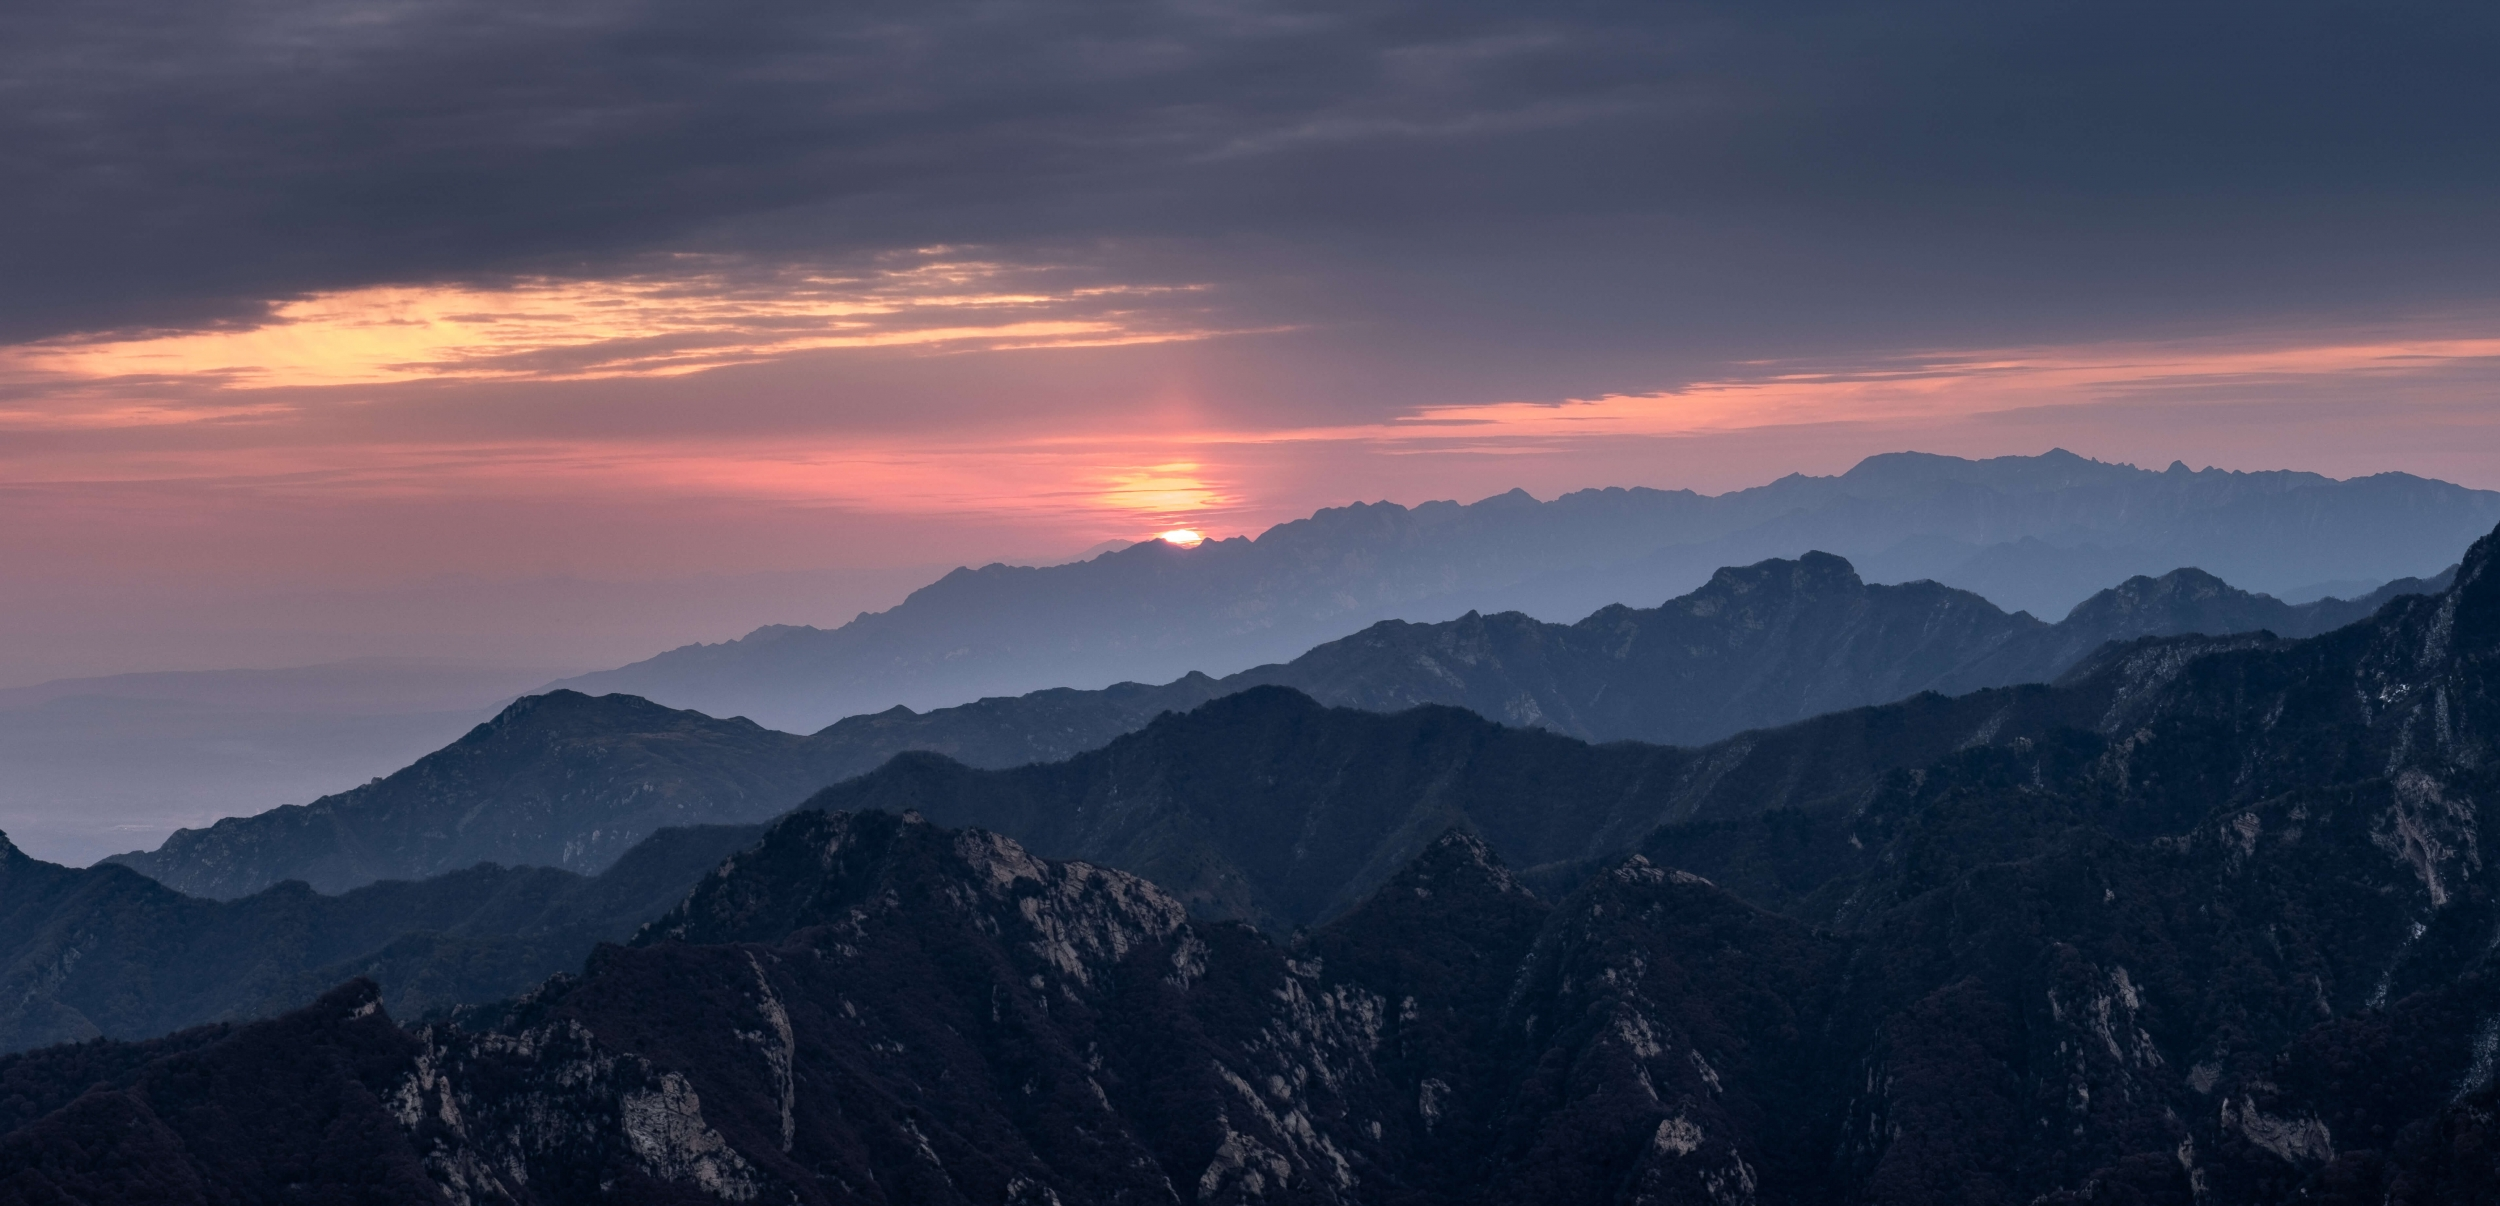 Sunrise Huashan, Travel in China, China travel, China trips, Forbidden City, Beijing, Photo Tour in China, China photo tours, Xi'an, Muslim district in Xi'an, Terracotta army, Huashan